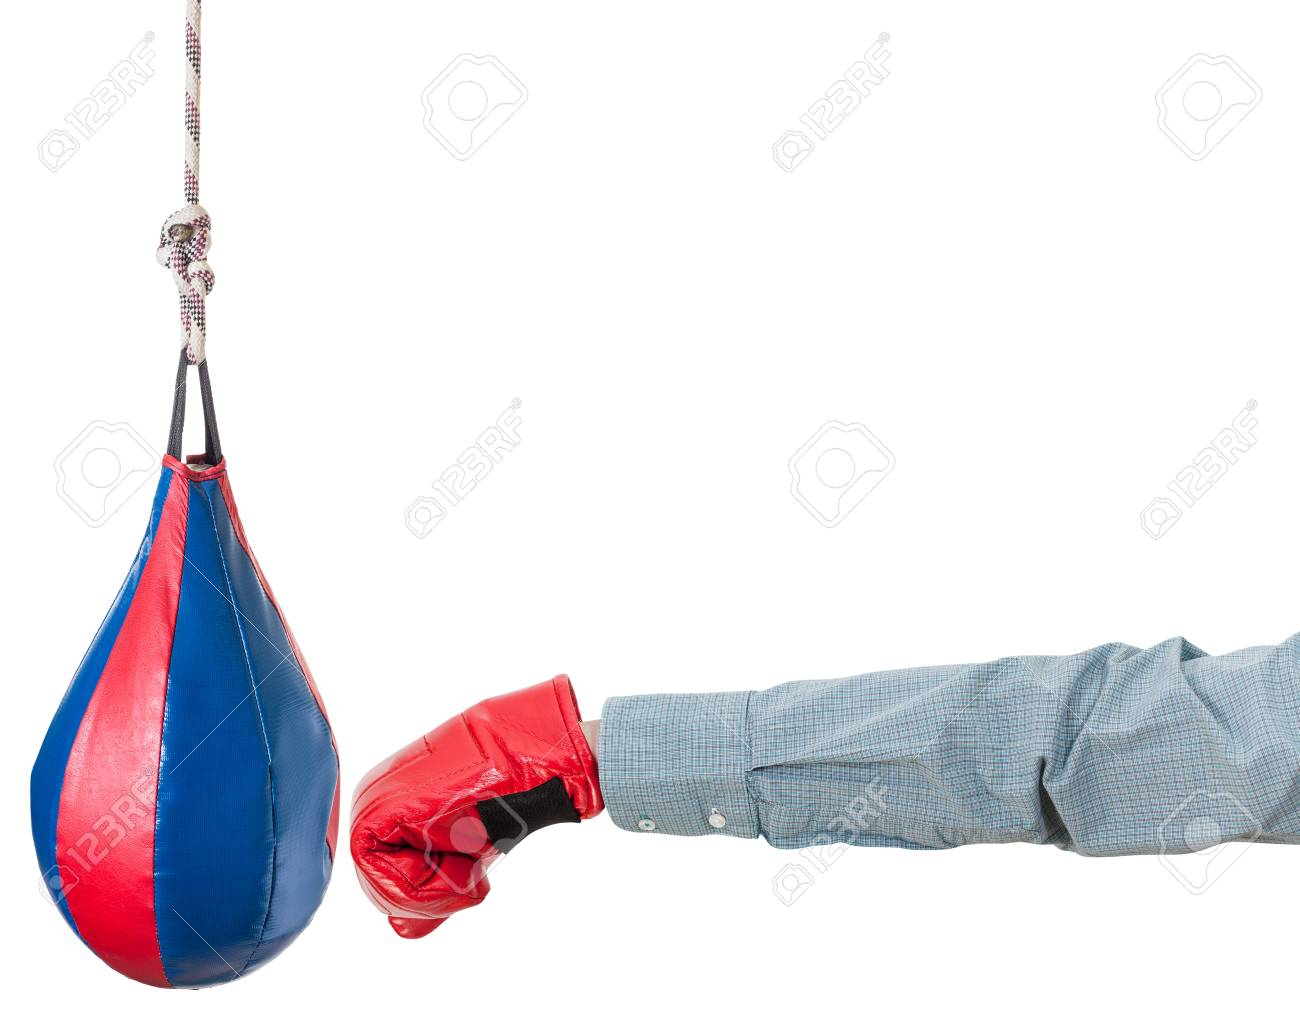 Hand Gesture   Office Worker With Boxing Glove Punches Punching Bag  Isolated On White Background Stock